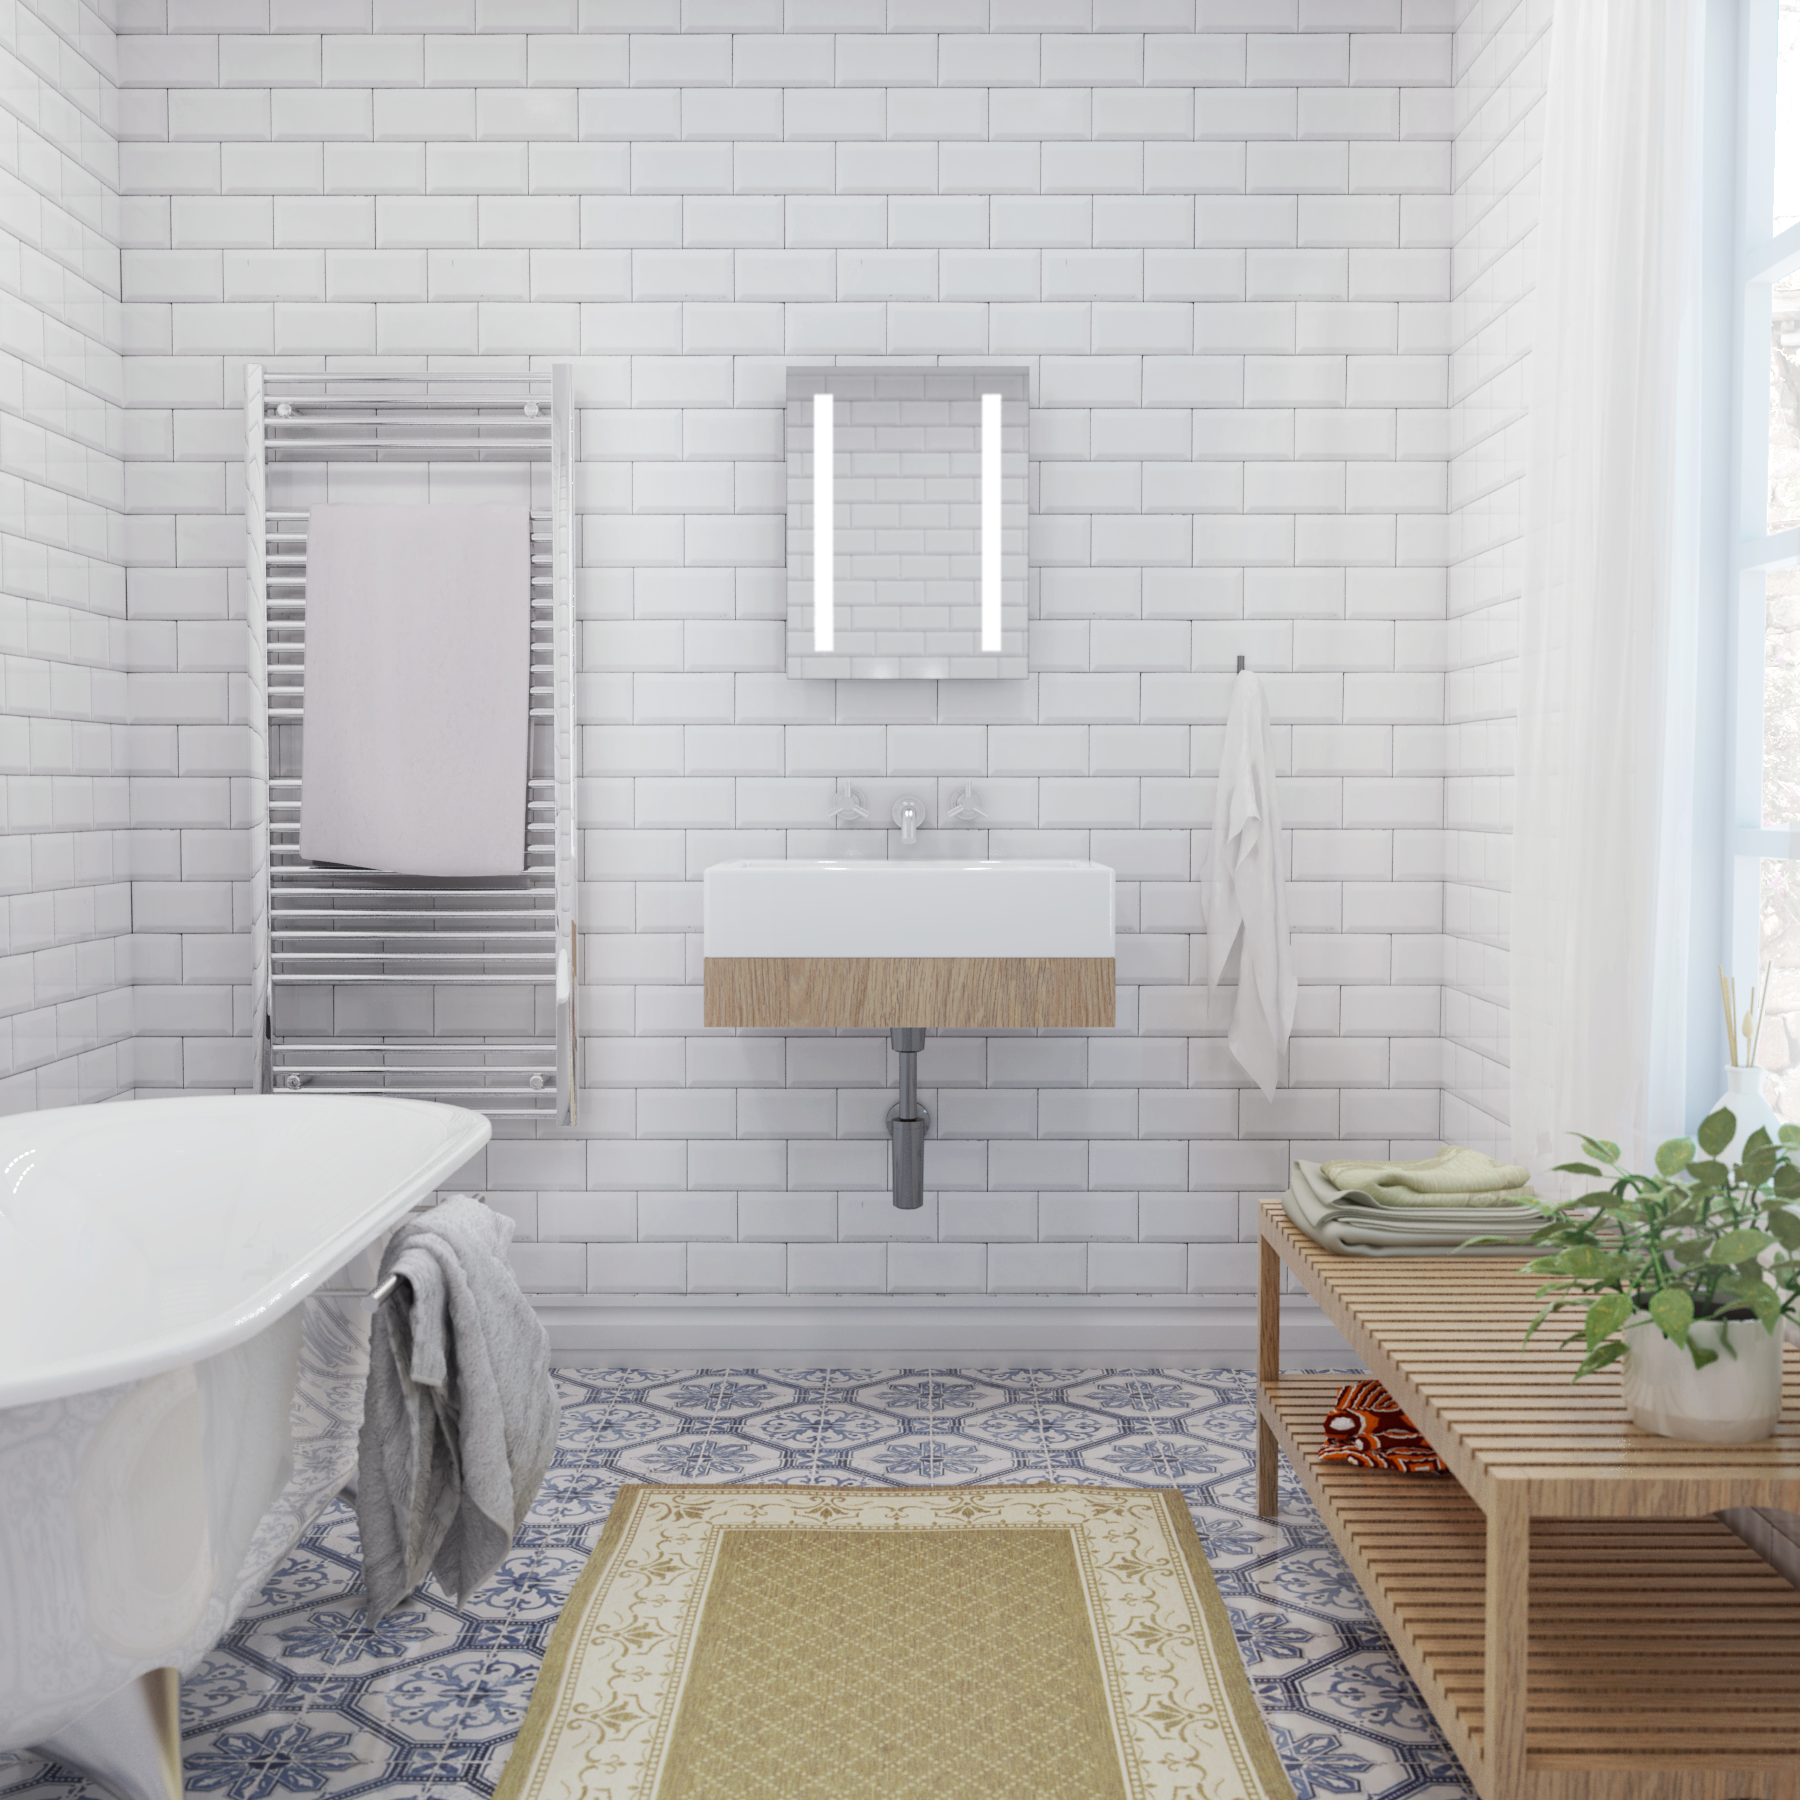 How To Add Style To A Rental Bathroom - Apartment Number 4